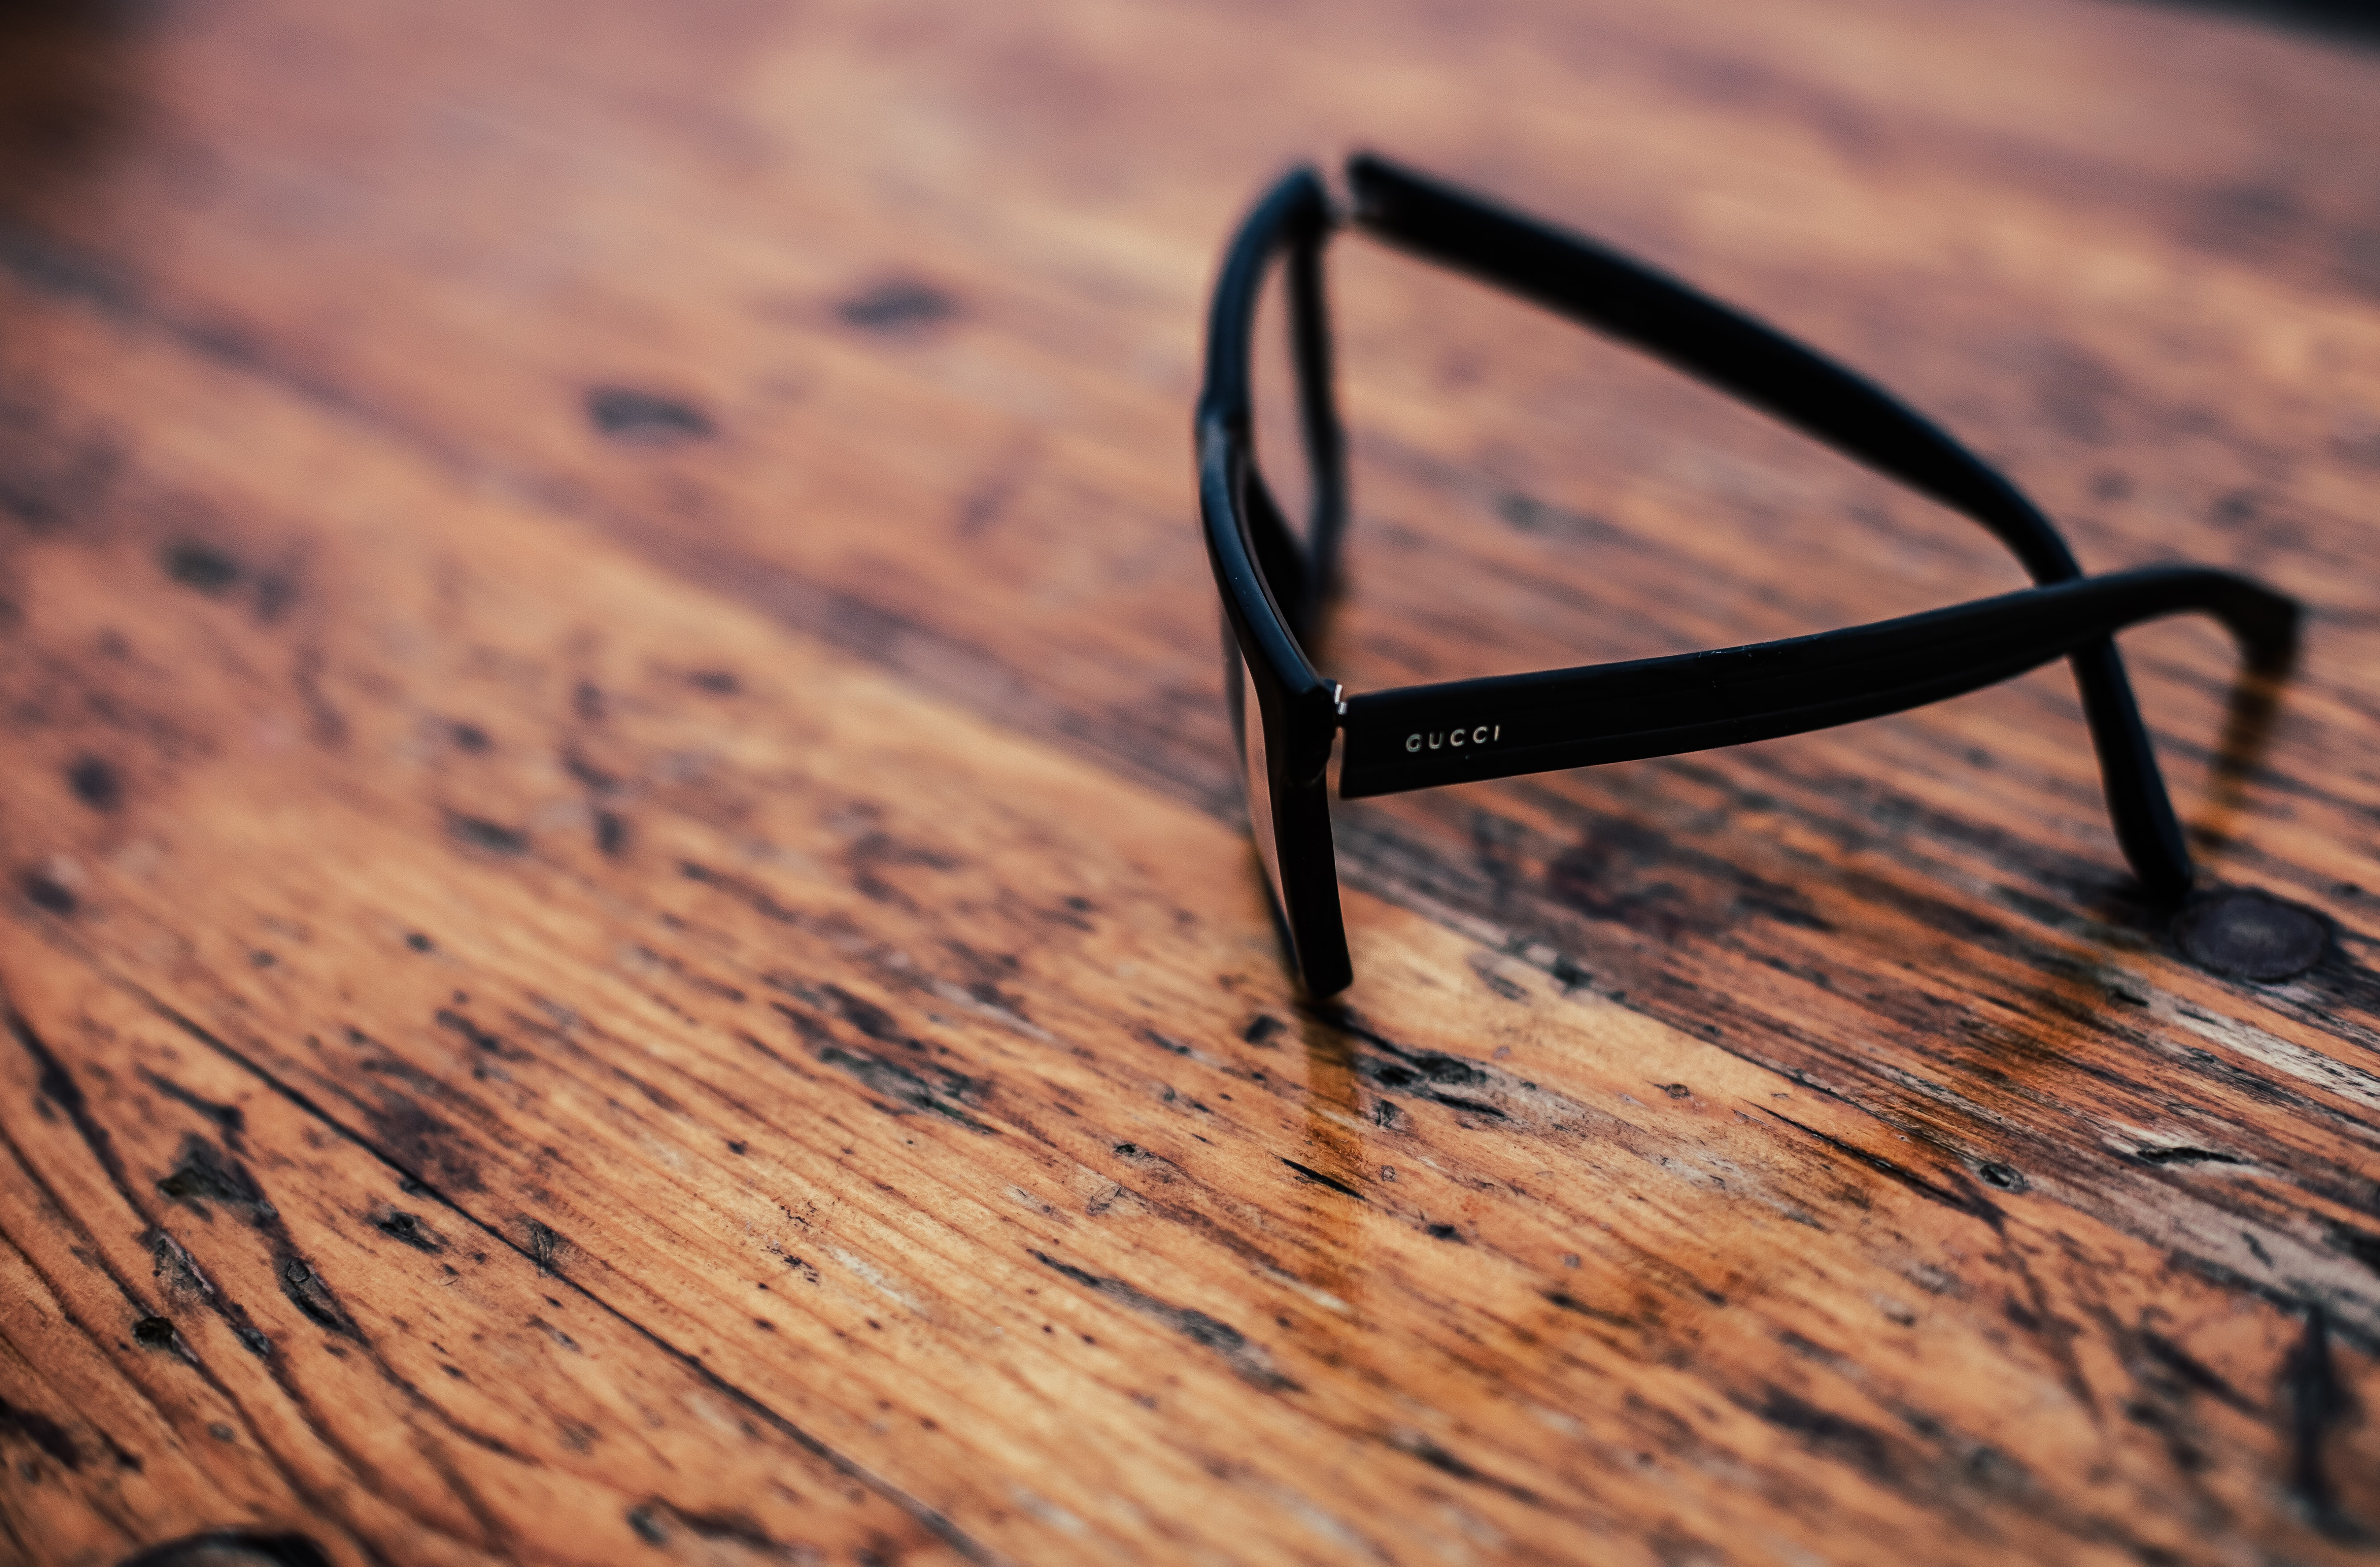 Gucci glasses with black frames on a wooden surface